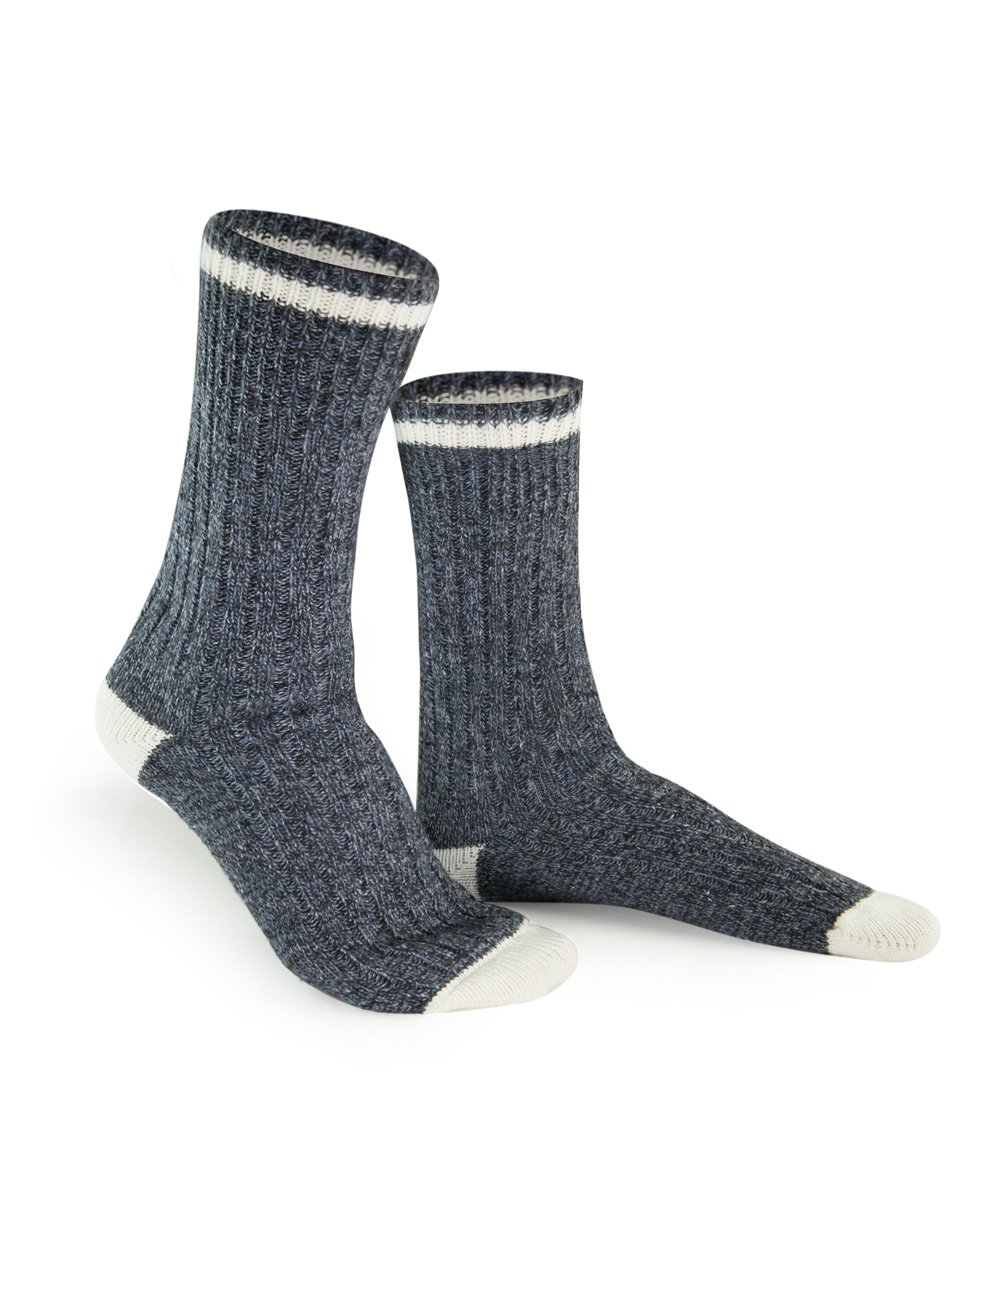 3 Pack Women's Denim Wool Socks - Size 9-10 Duray